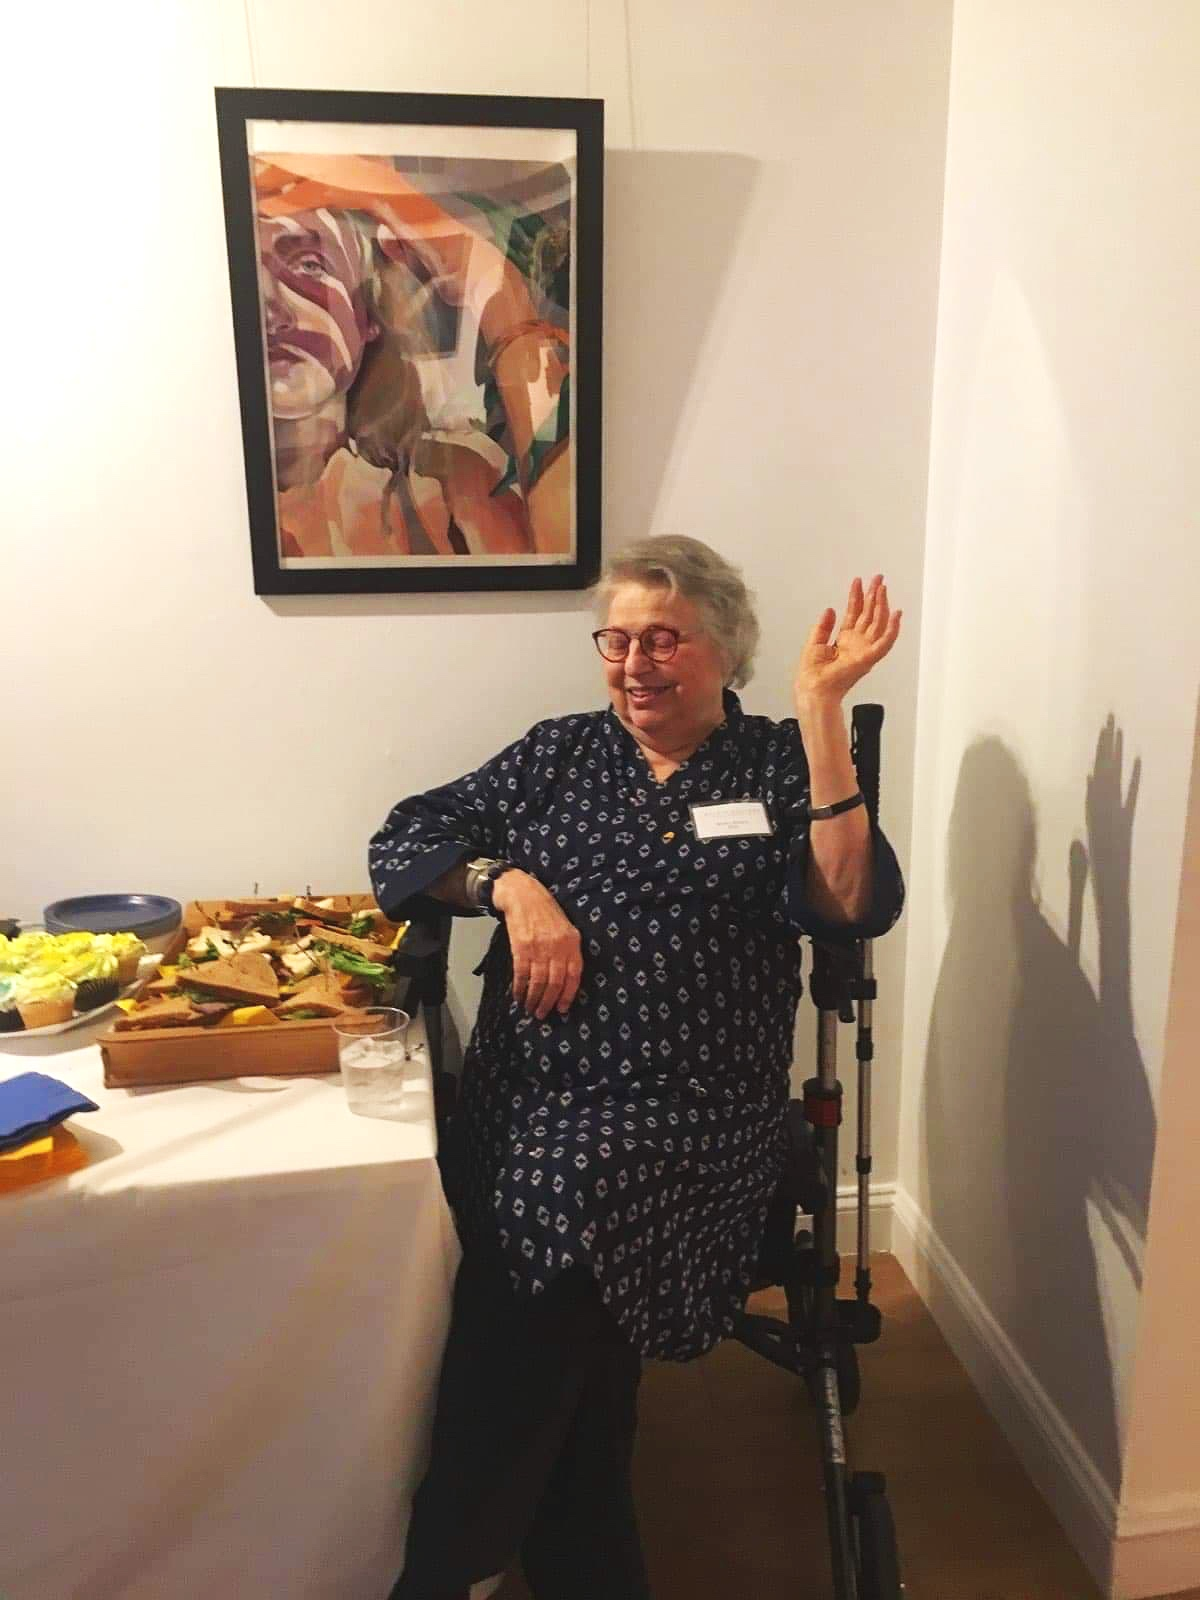 Barb at a Studio Gallery event, waving away compliments on her excellent food display.